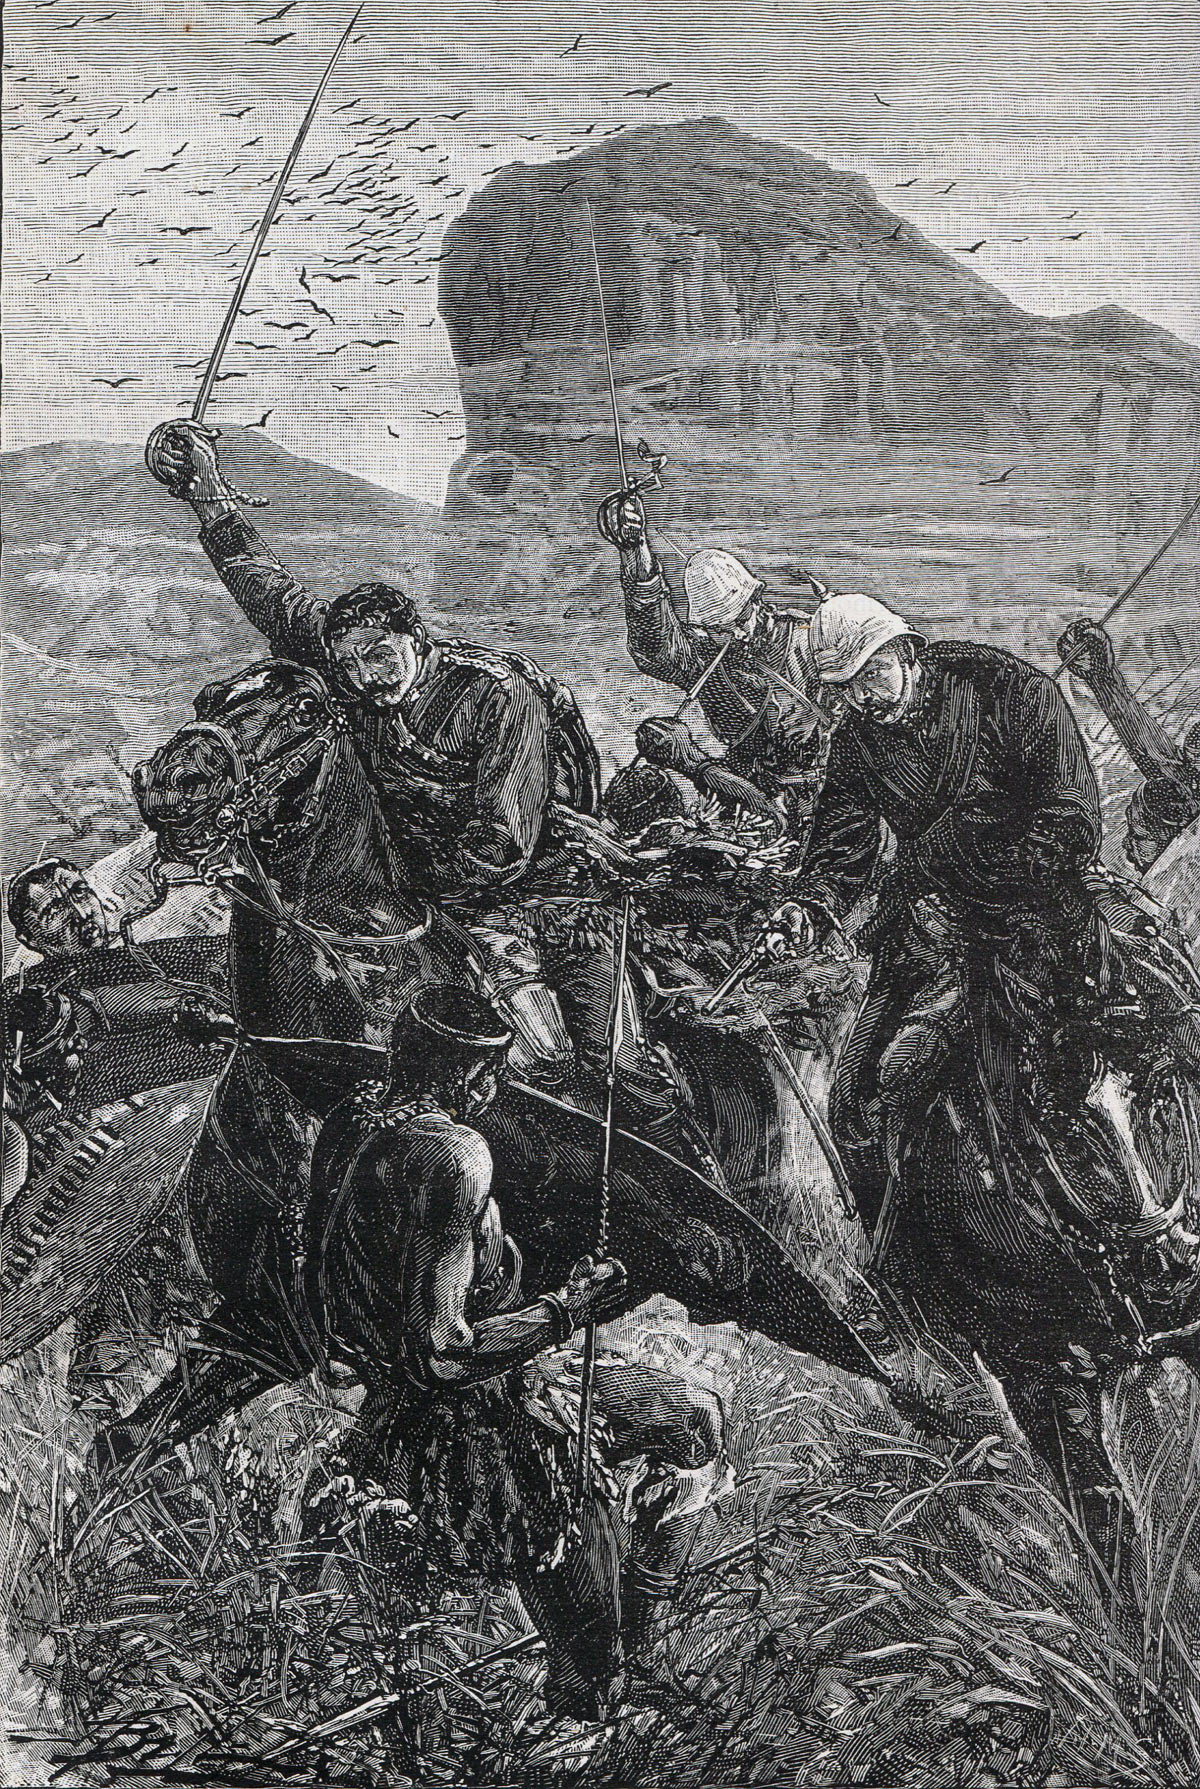 The escape of Lieutenants Melville and Coghill with the Queen's Colour of the 24th Regiment at the Battle of Isandlwana on 22nd January 1879 in the Zulu War